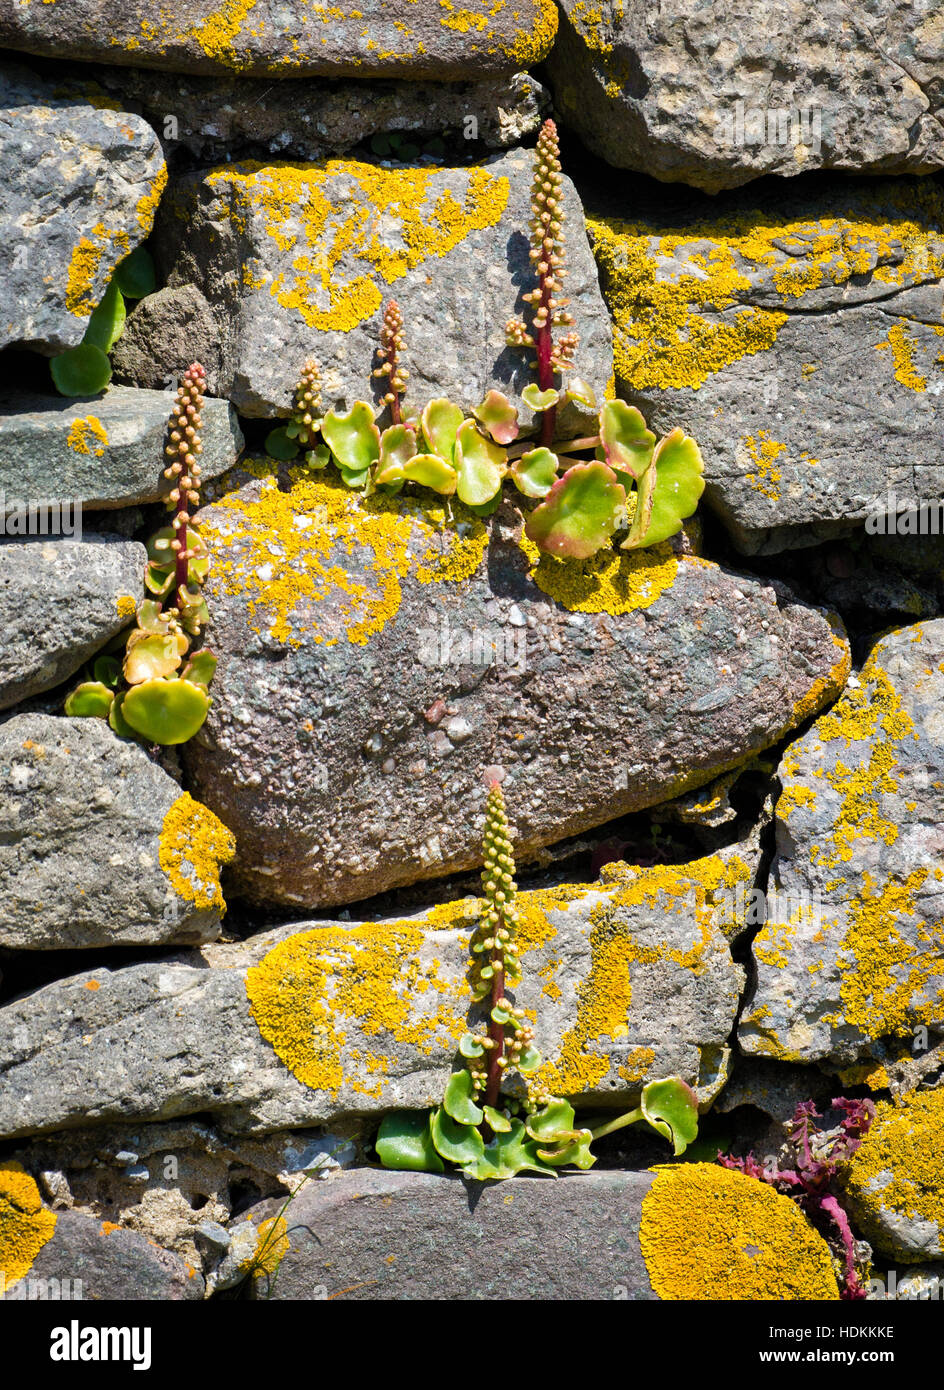 Wall pennywort or navelwort Umbilicus rupestris in typical habitat in the crevices of old stone walls on the Gower Stock Photo